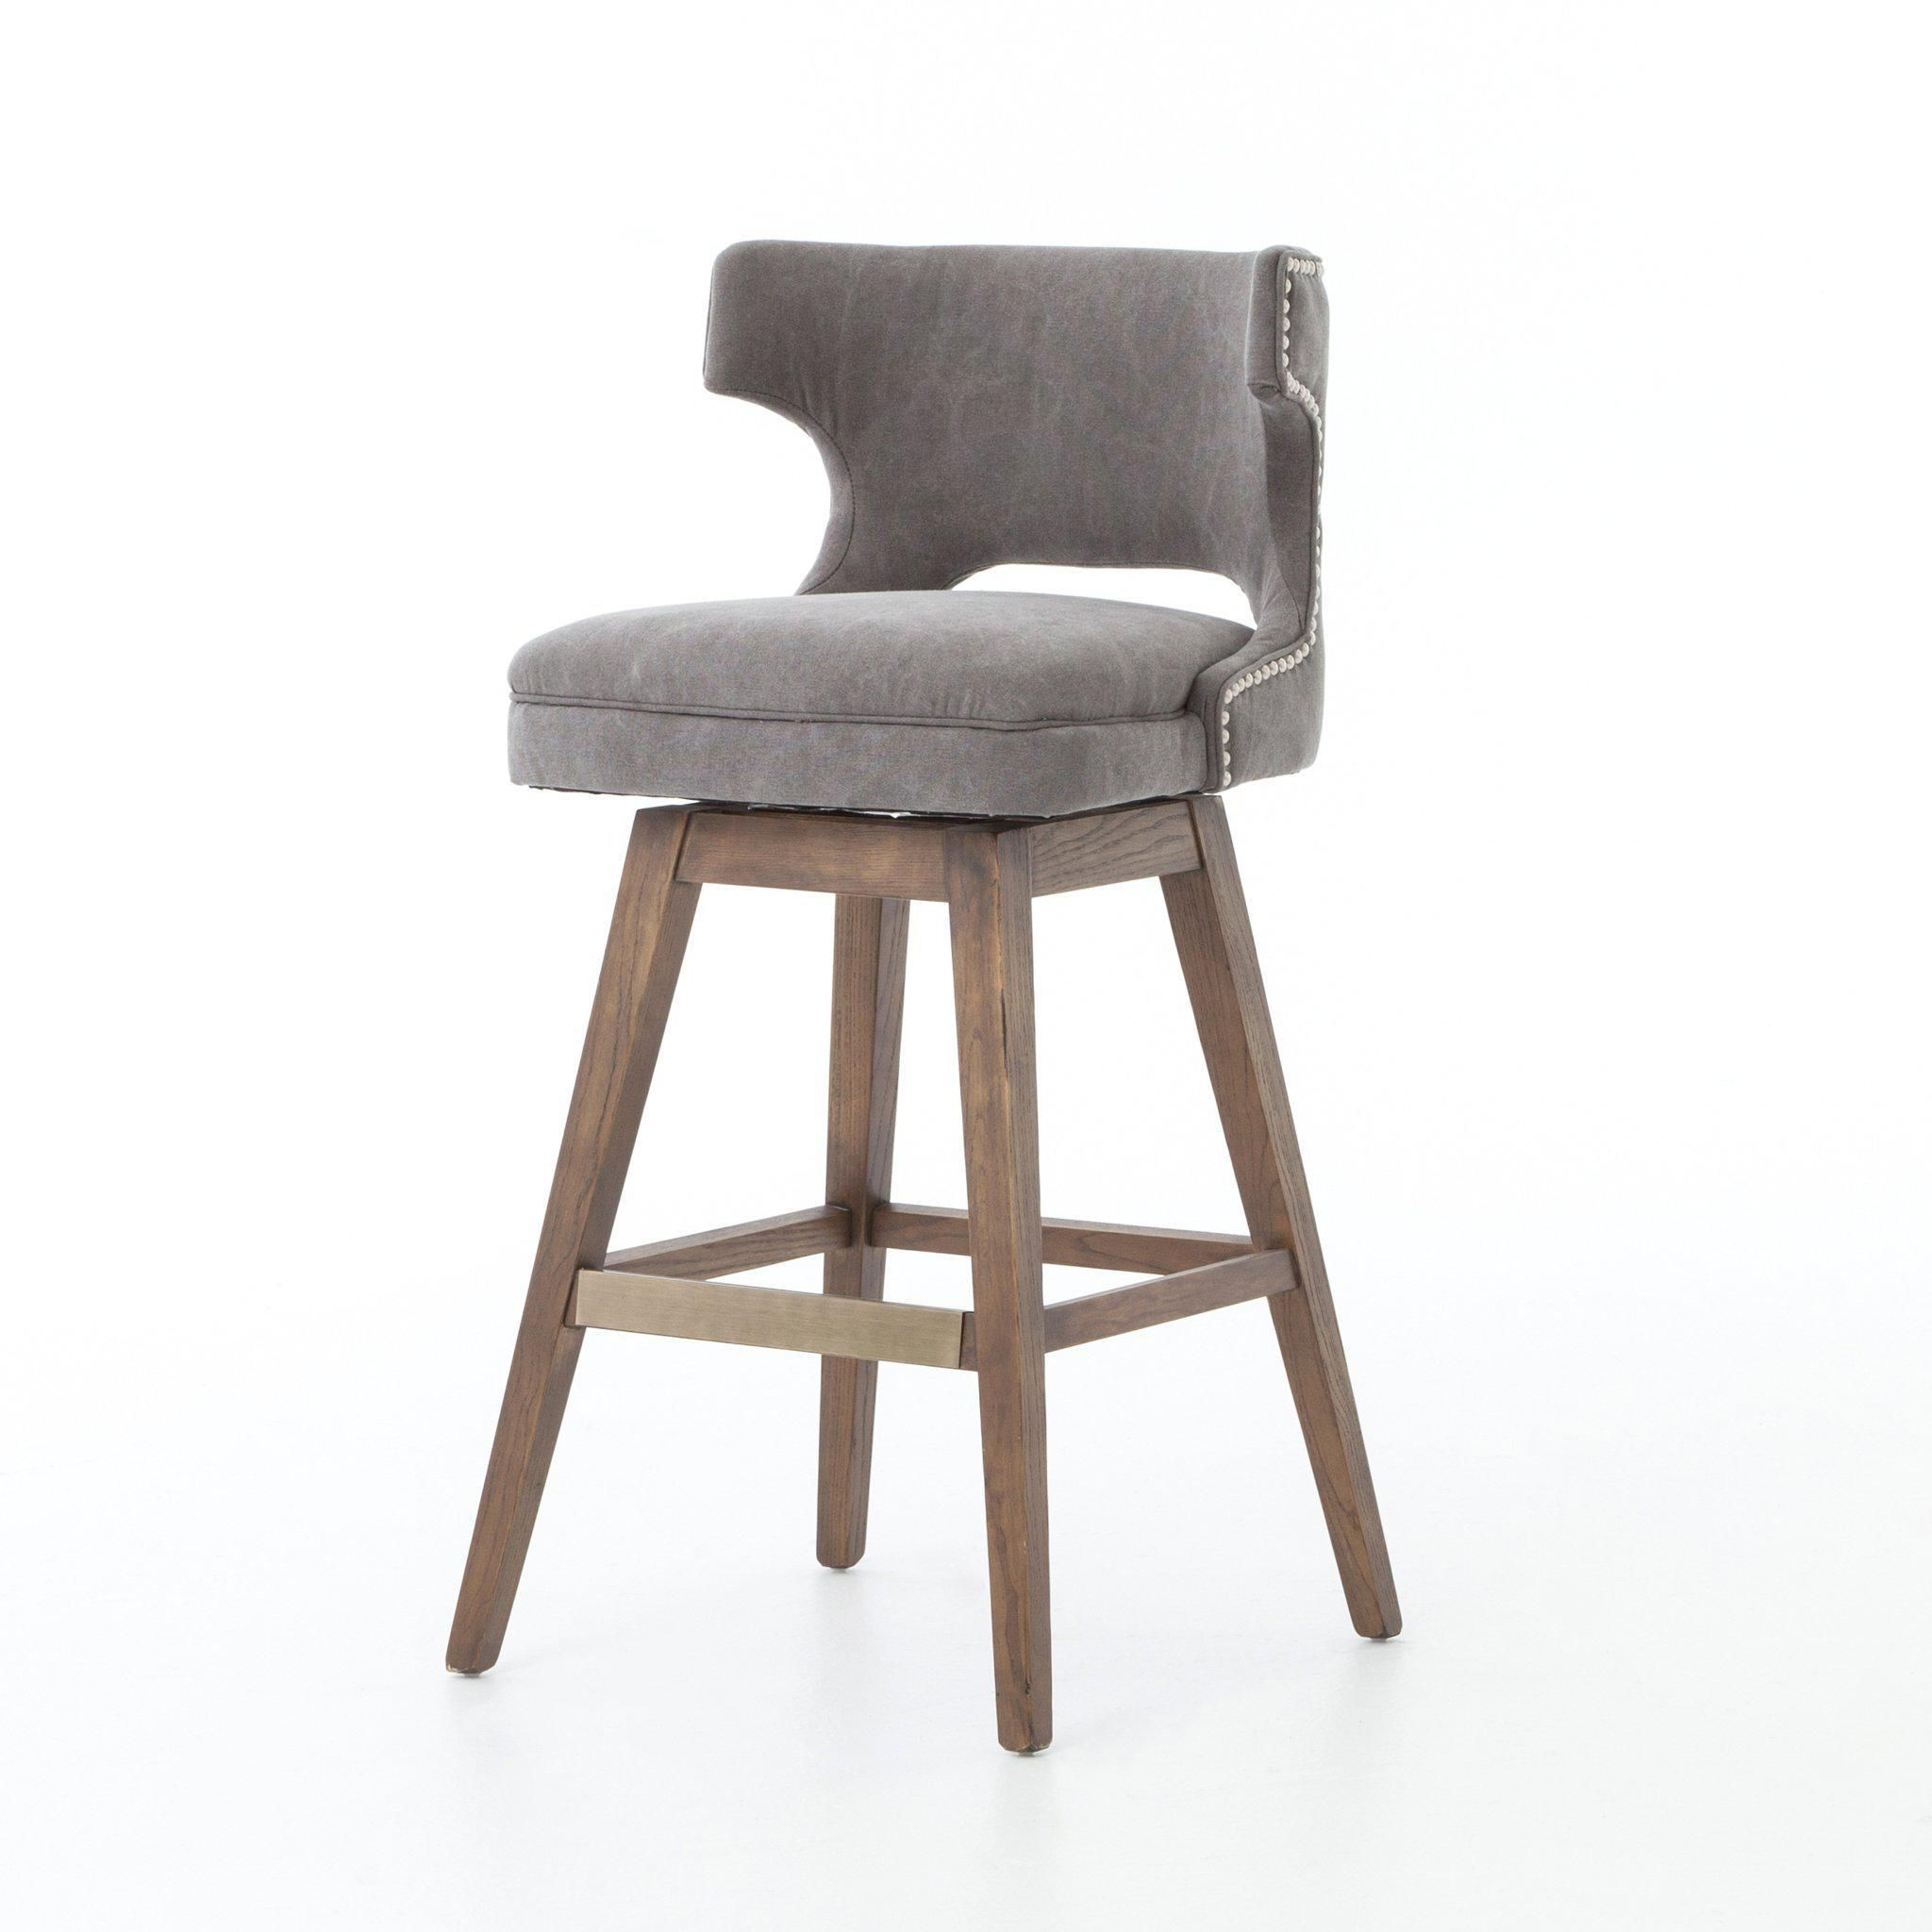 Task Bar Counter Stool With Swivel Base Dark Moon Canvas